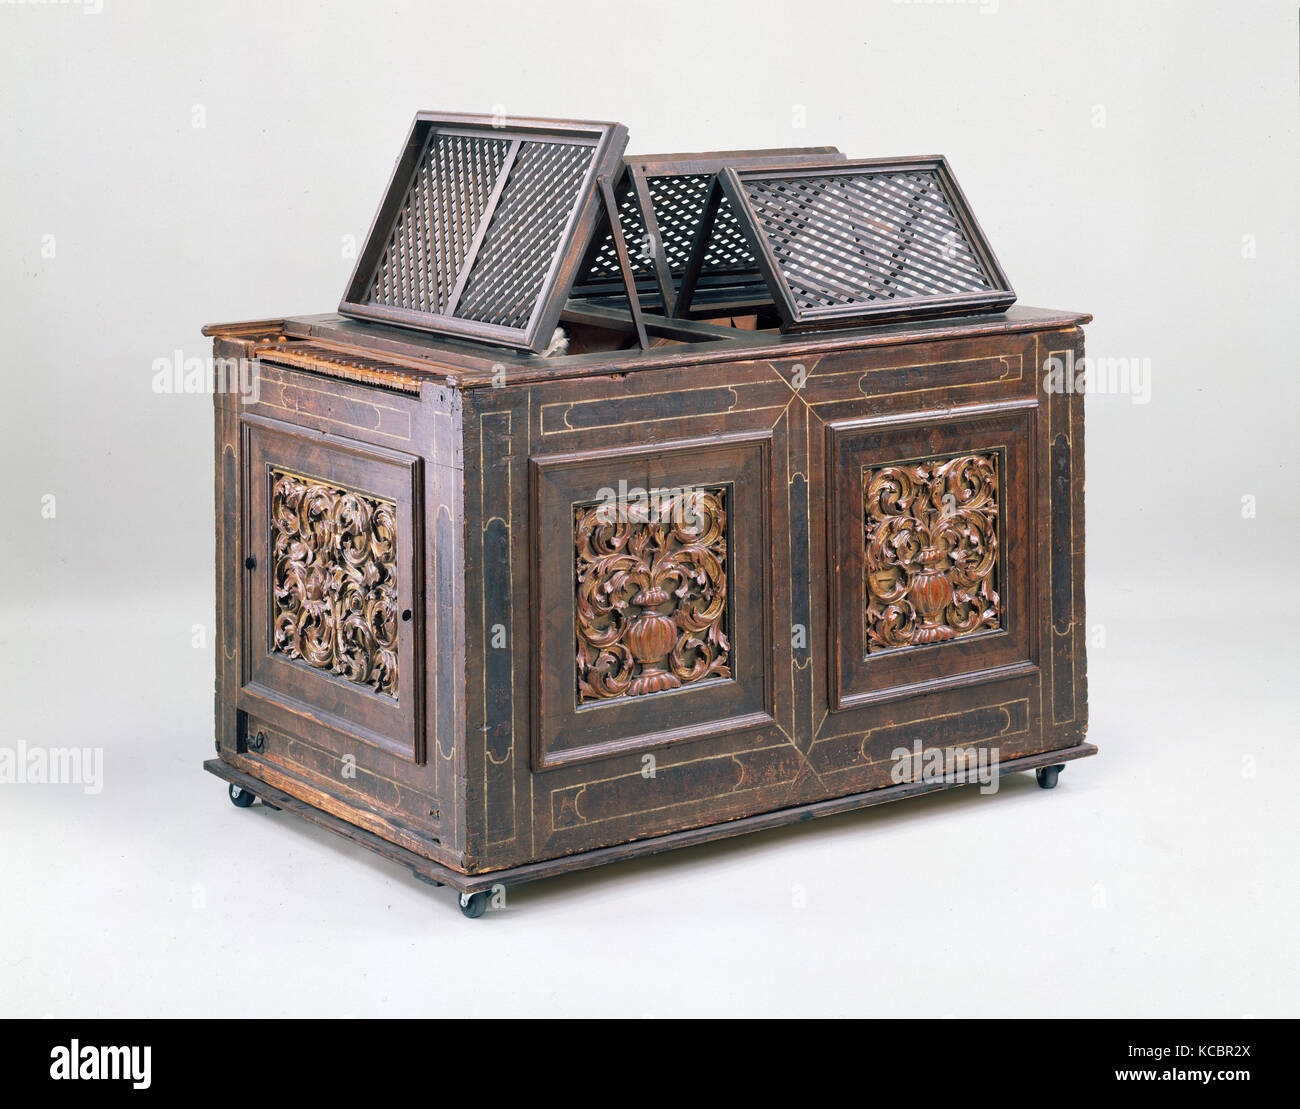 Positive Organ, 17th century, Germany, German, Woods, metal alloys, leather and various materials., L. 162.5 cm - Stock Image